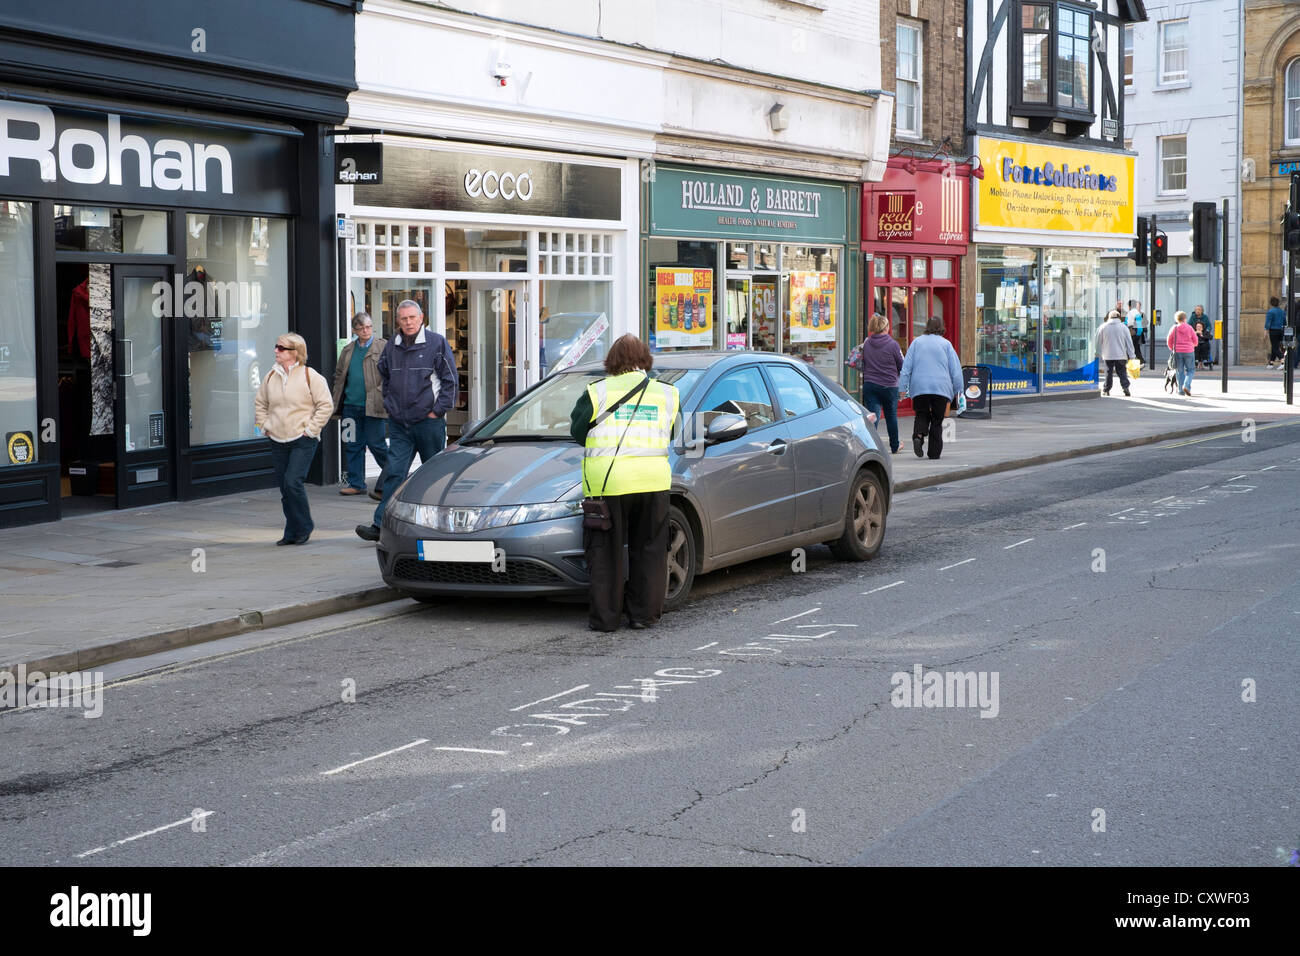 UK Traffic Warden or Parking Ambassador putting a parking ticket on an illegally parked car in the street - Stock Image